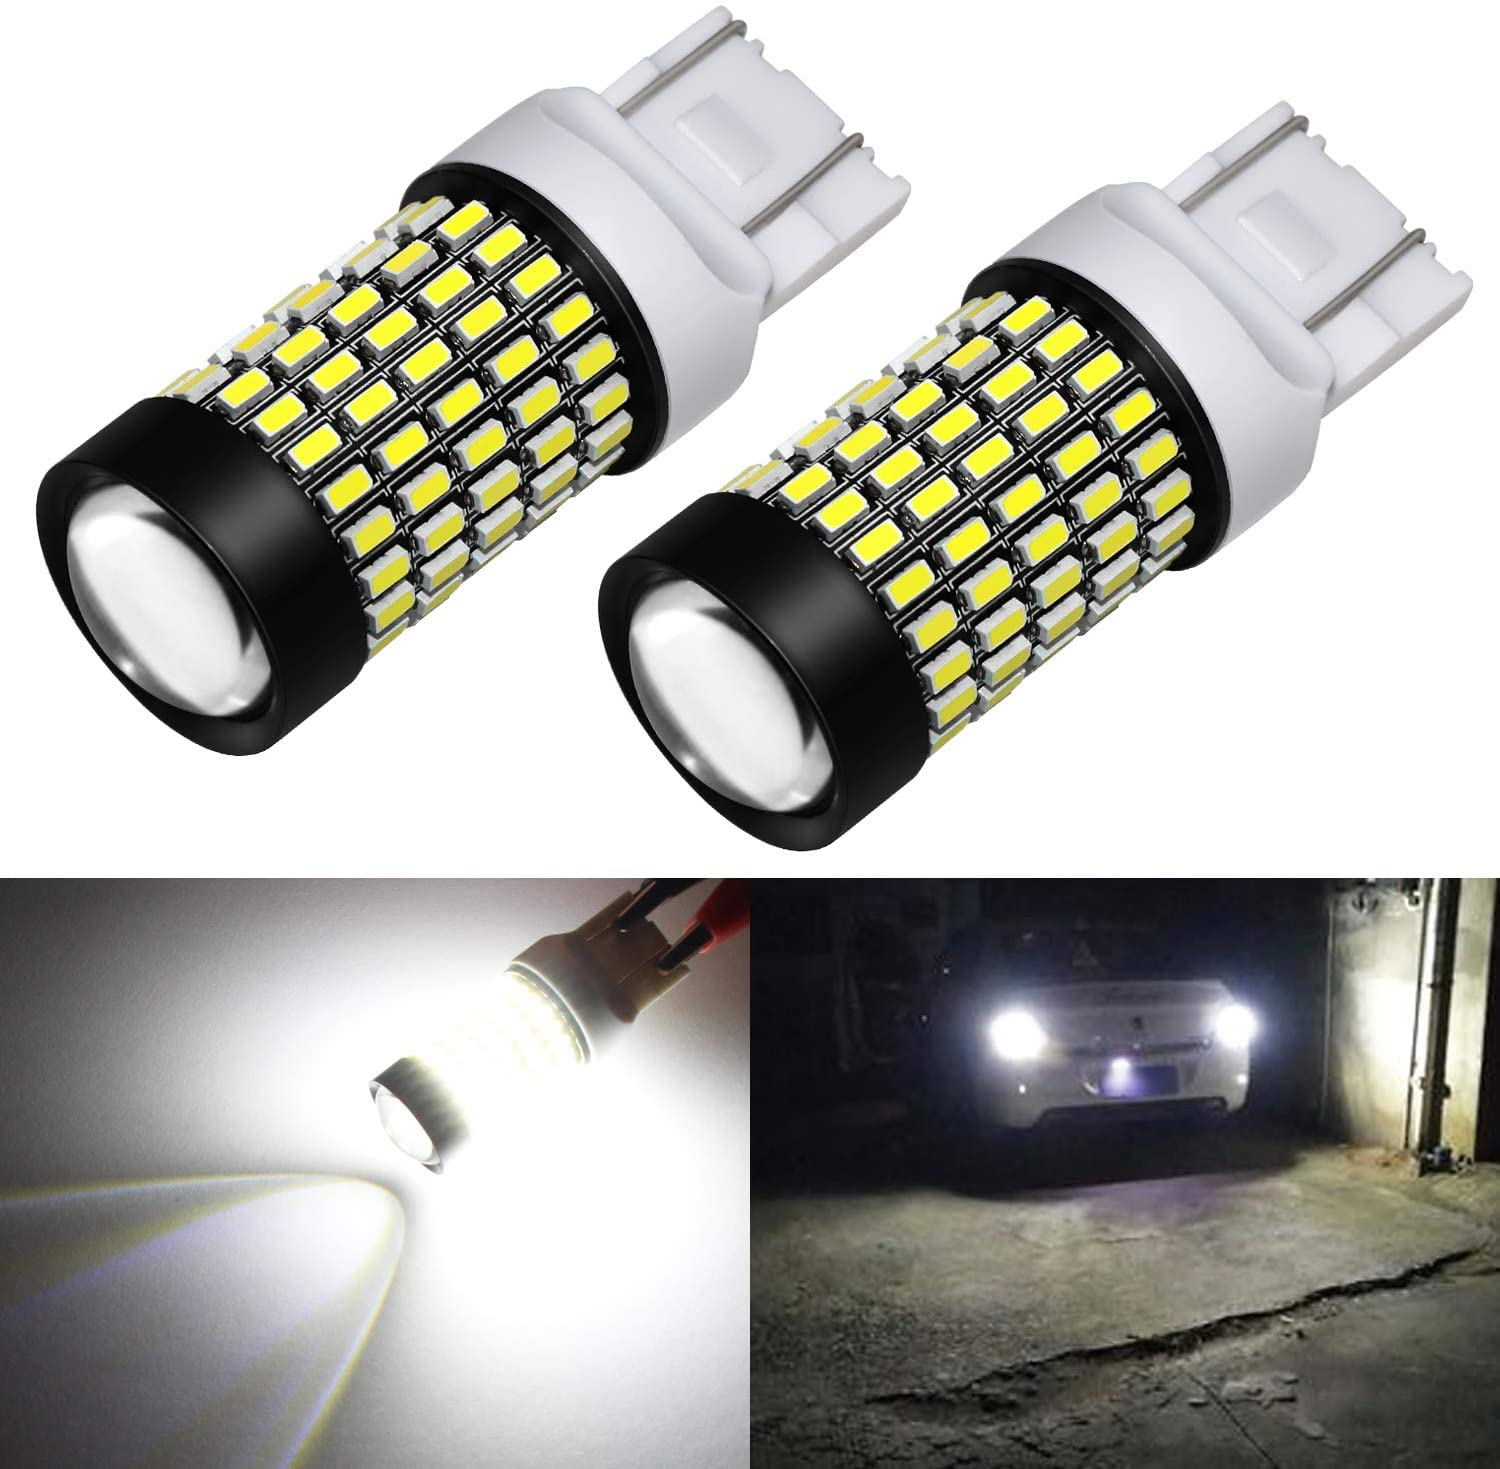 Phinlion 7443 LED Bulb White Super Bright 2800 Lumens 3014 103-SMD 7440 7444 LED Bulbs with Projector for Back Up Reverse Turn Signal Brake Stop Tail Lights, 6000K Xenon White